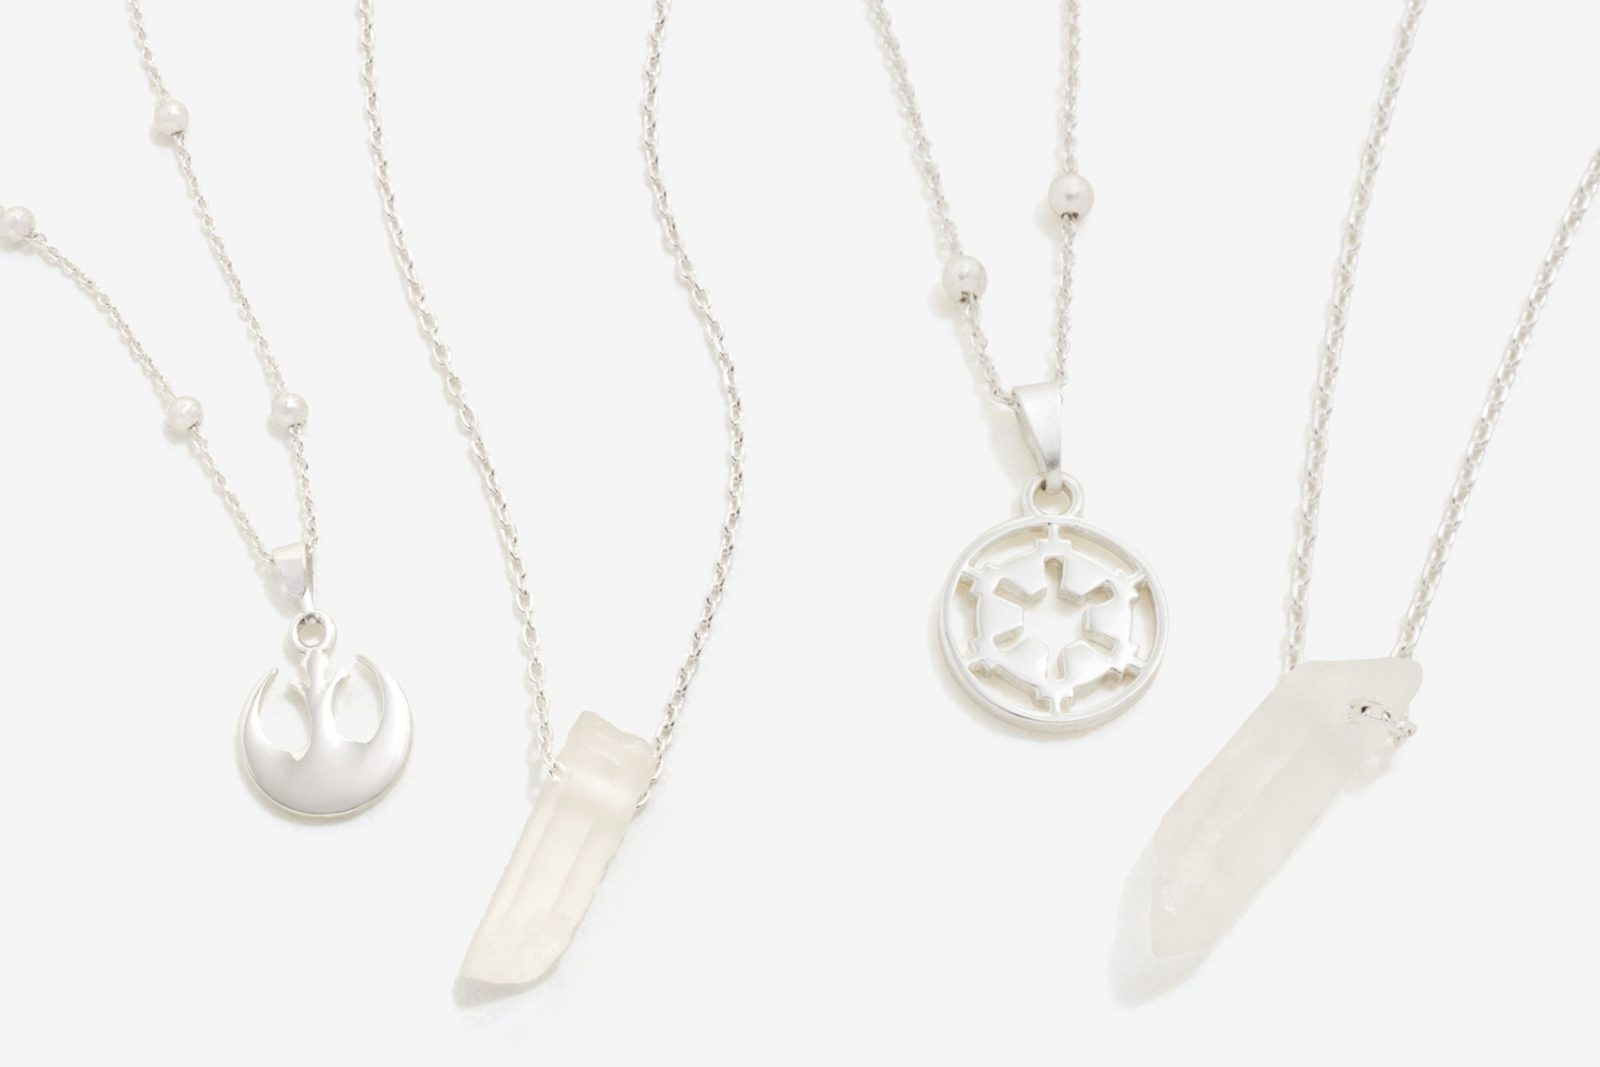 Star Wars Rebel Alliance Galactic Empire Kyber Crystal necklace jewelry sets at Box Lunch